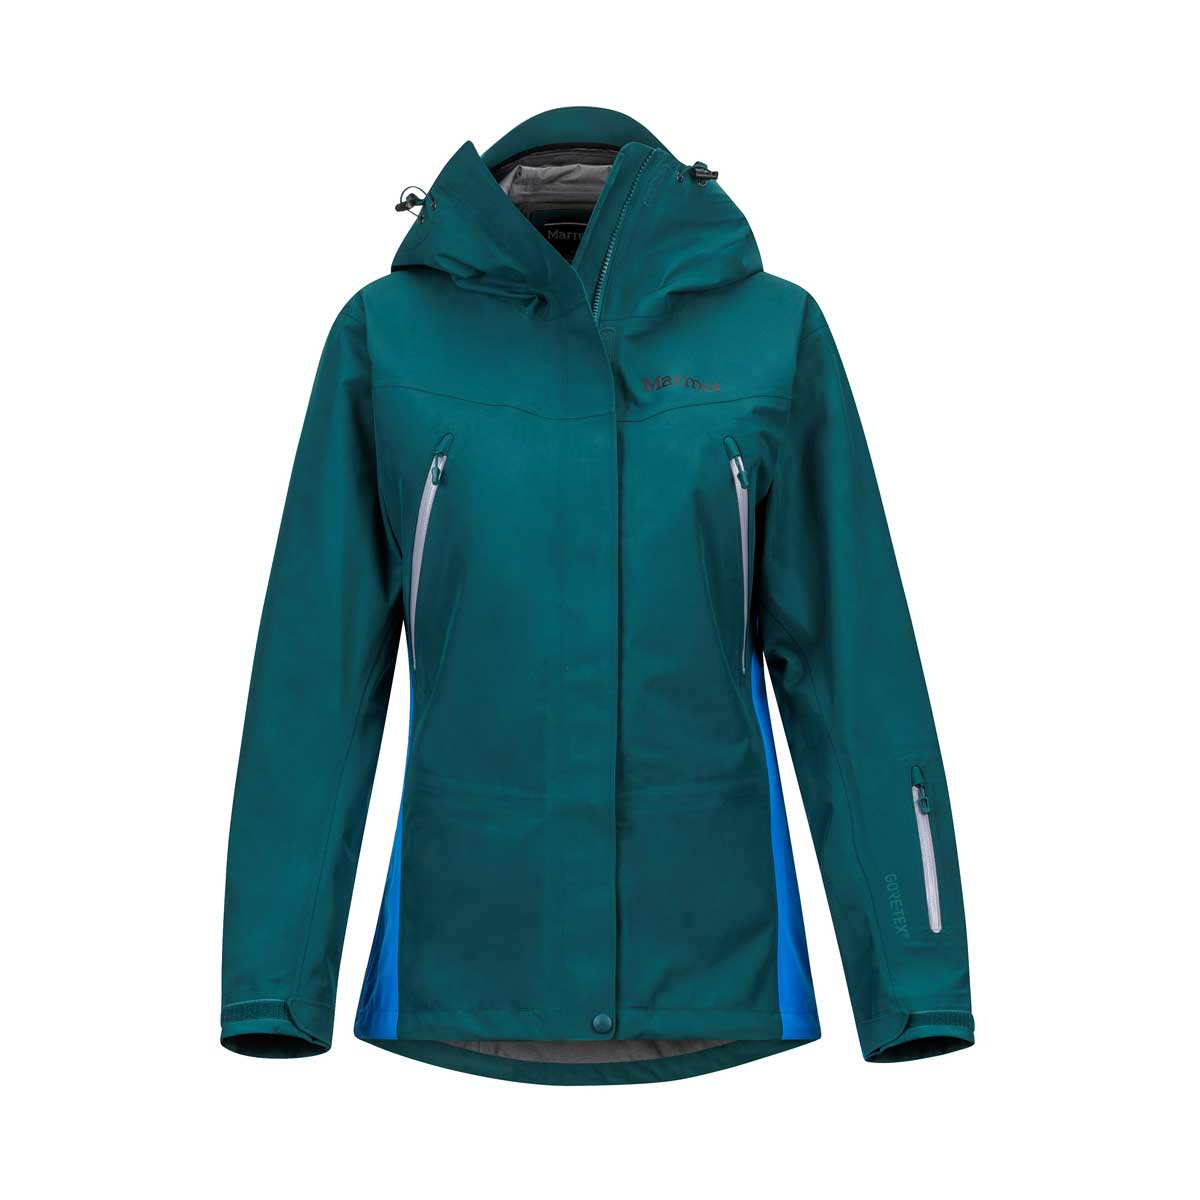 Marmot Women's Spire Jacket in Deep Teal and Clear Blue